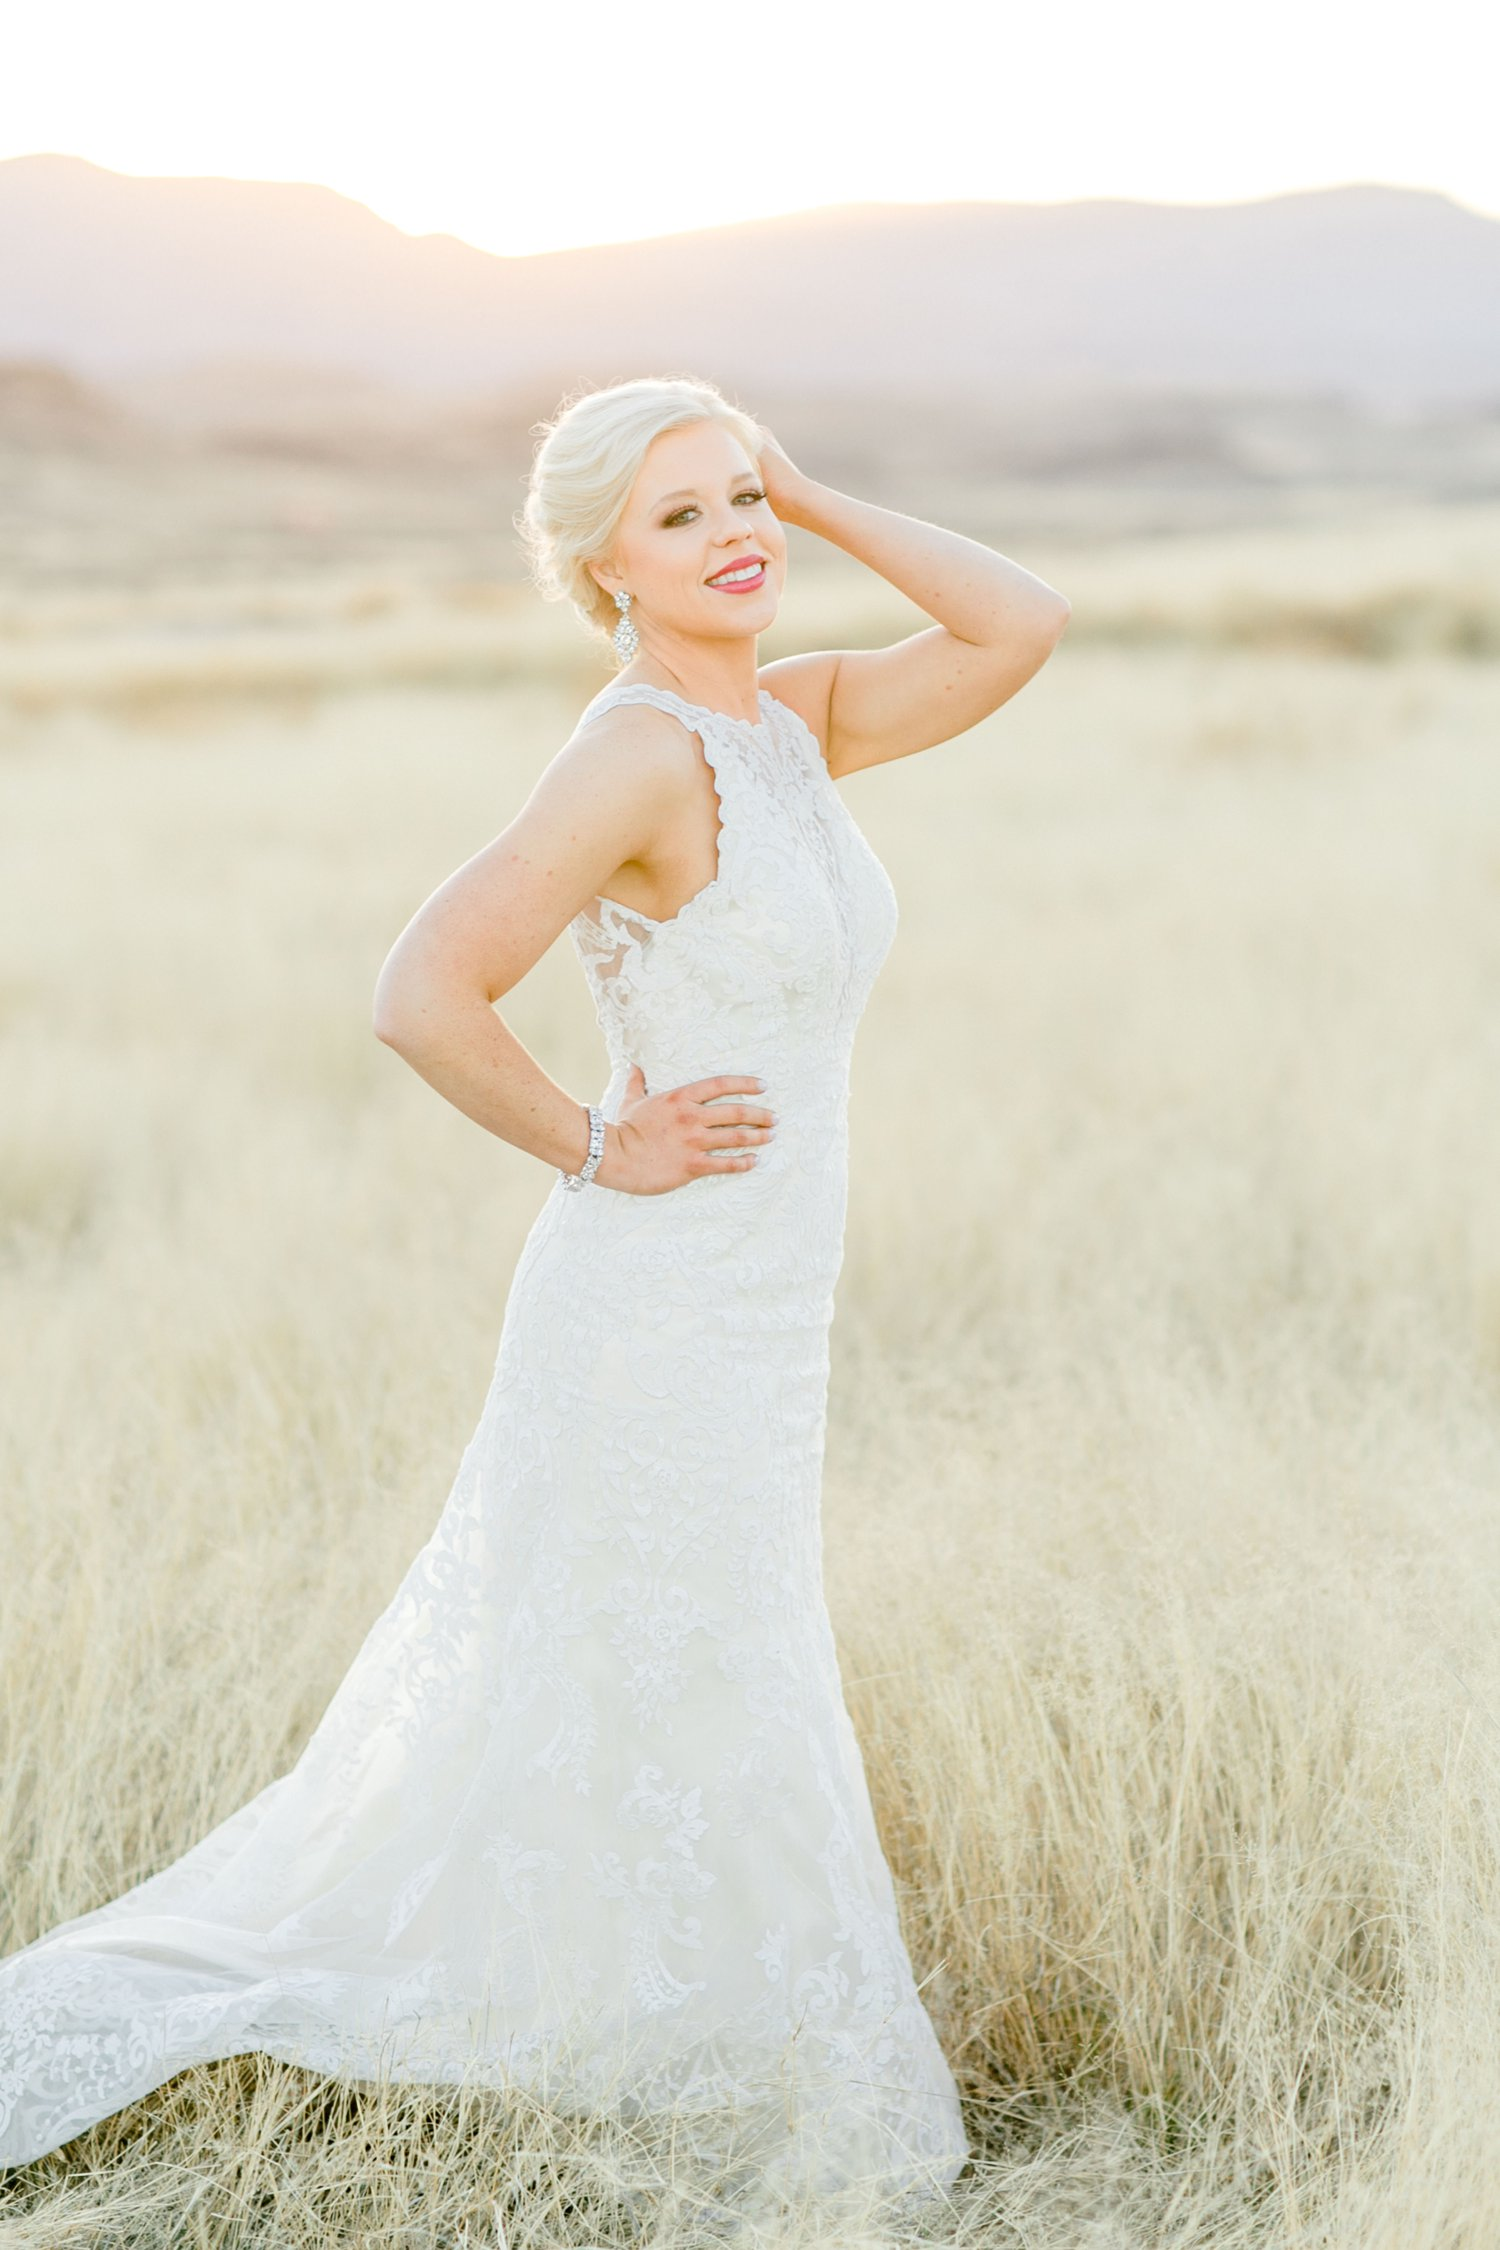 Jenna-evans-bridals-balmorhea-texas-fort-davis-wedding-photographer-lubbock-photographer__0064.jpg